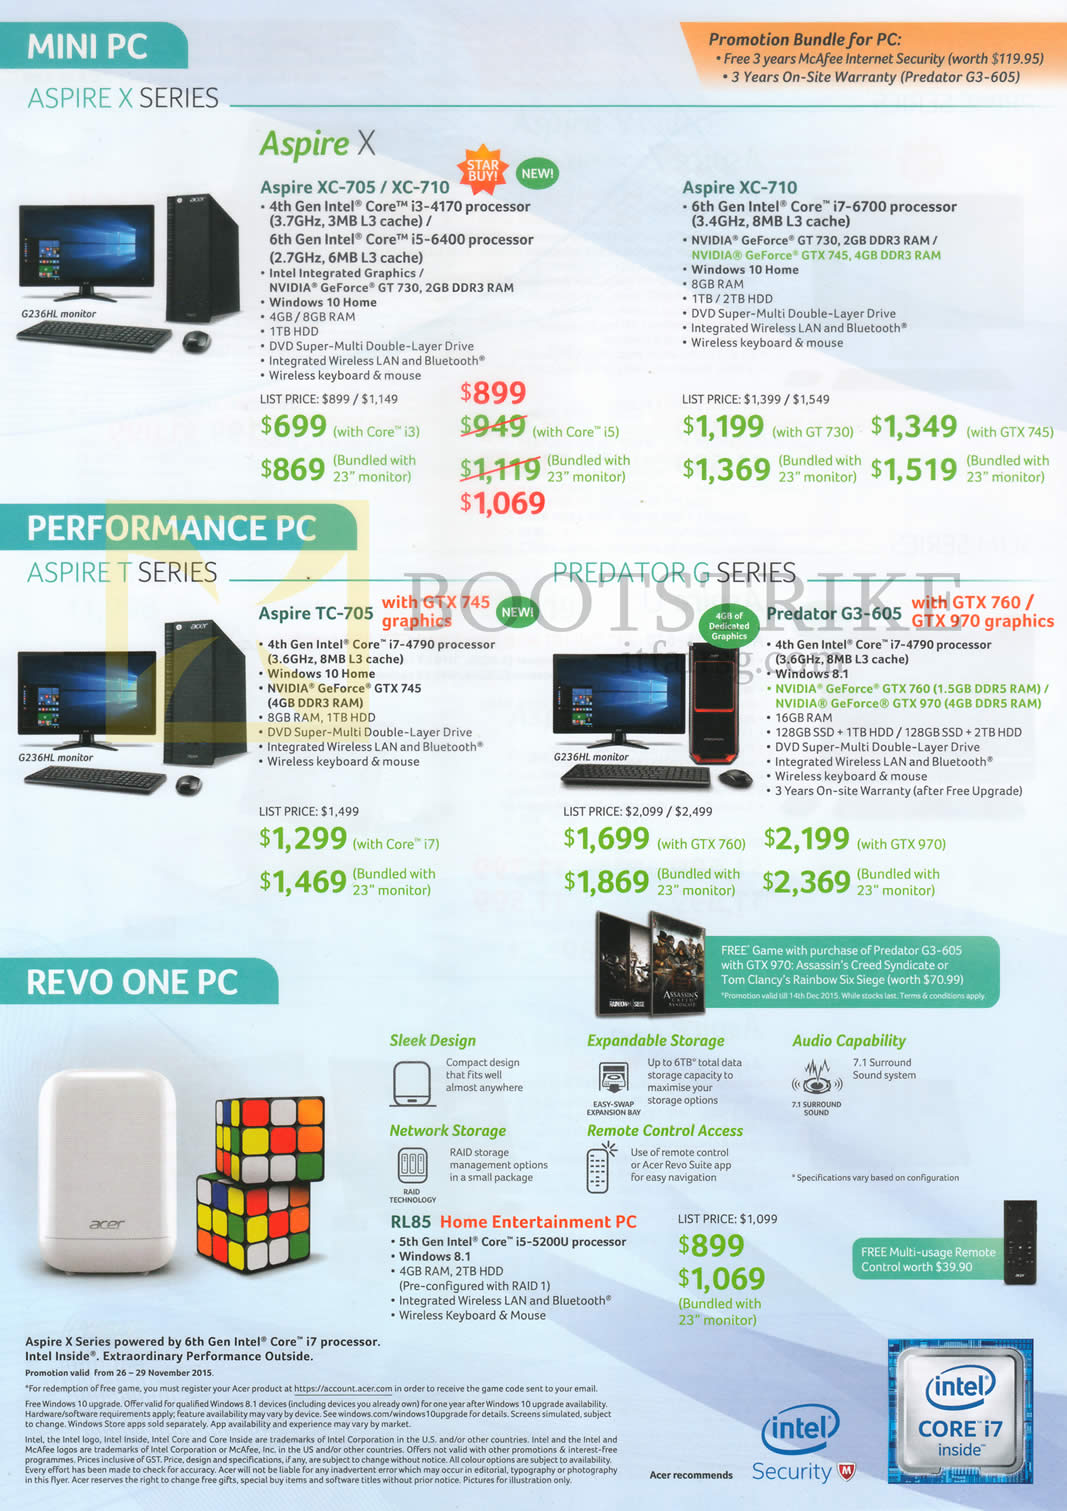 SITEX 2015 price list image brochure of Acer Desktop PCs Aspire XC705, XC-710, TC-705, Predator G3-605, RL85